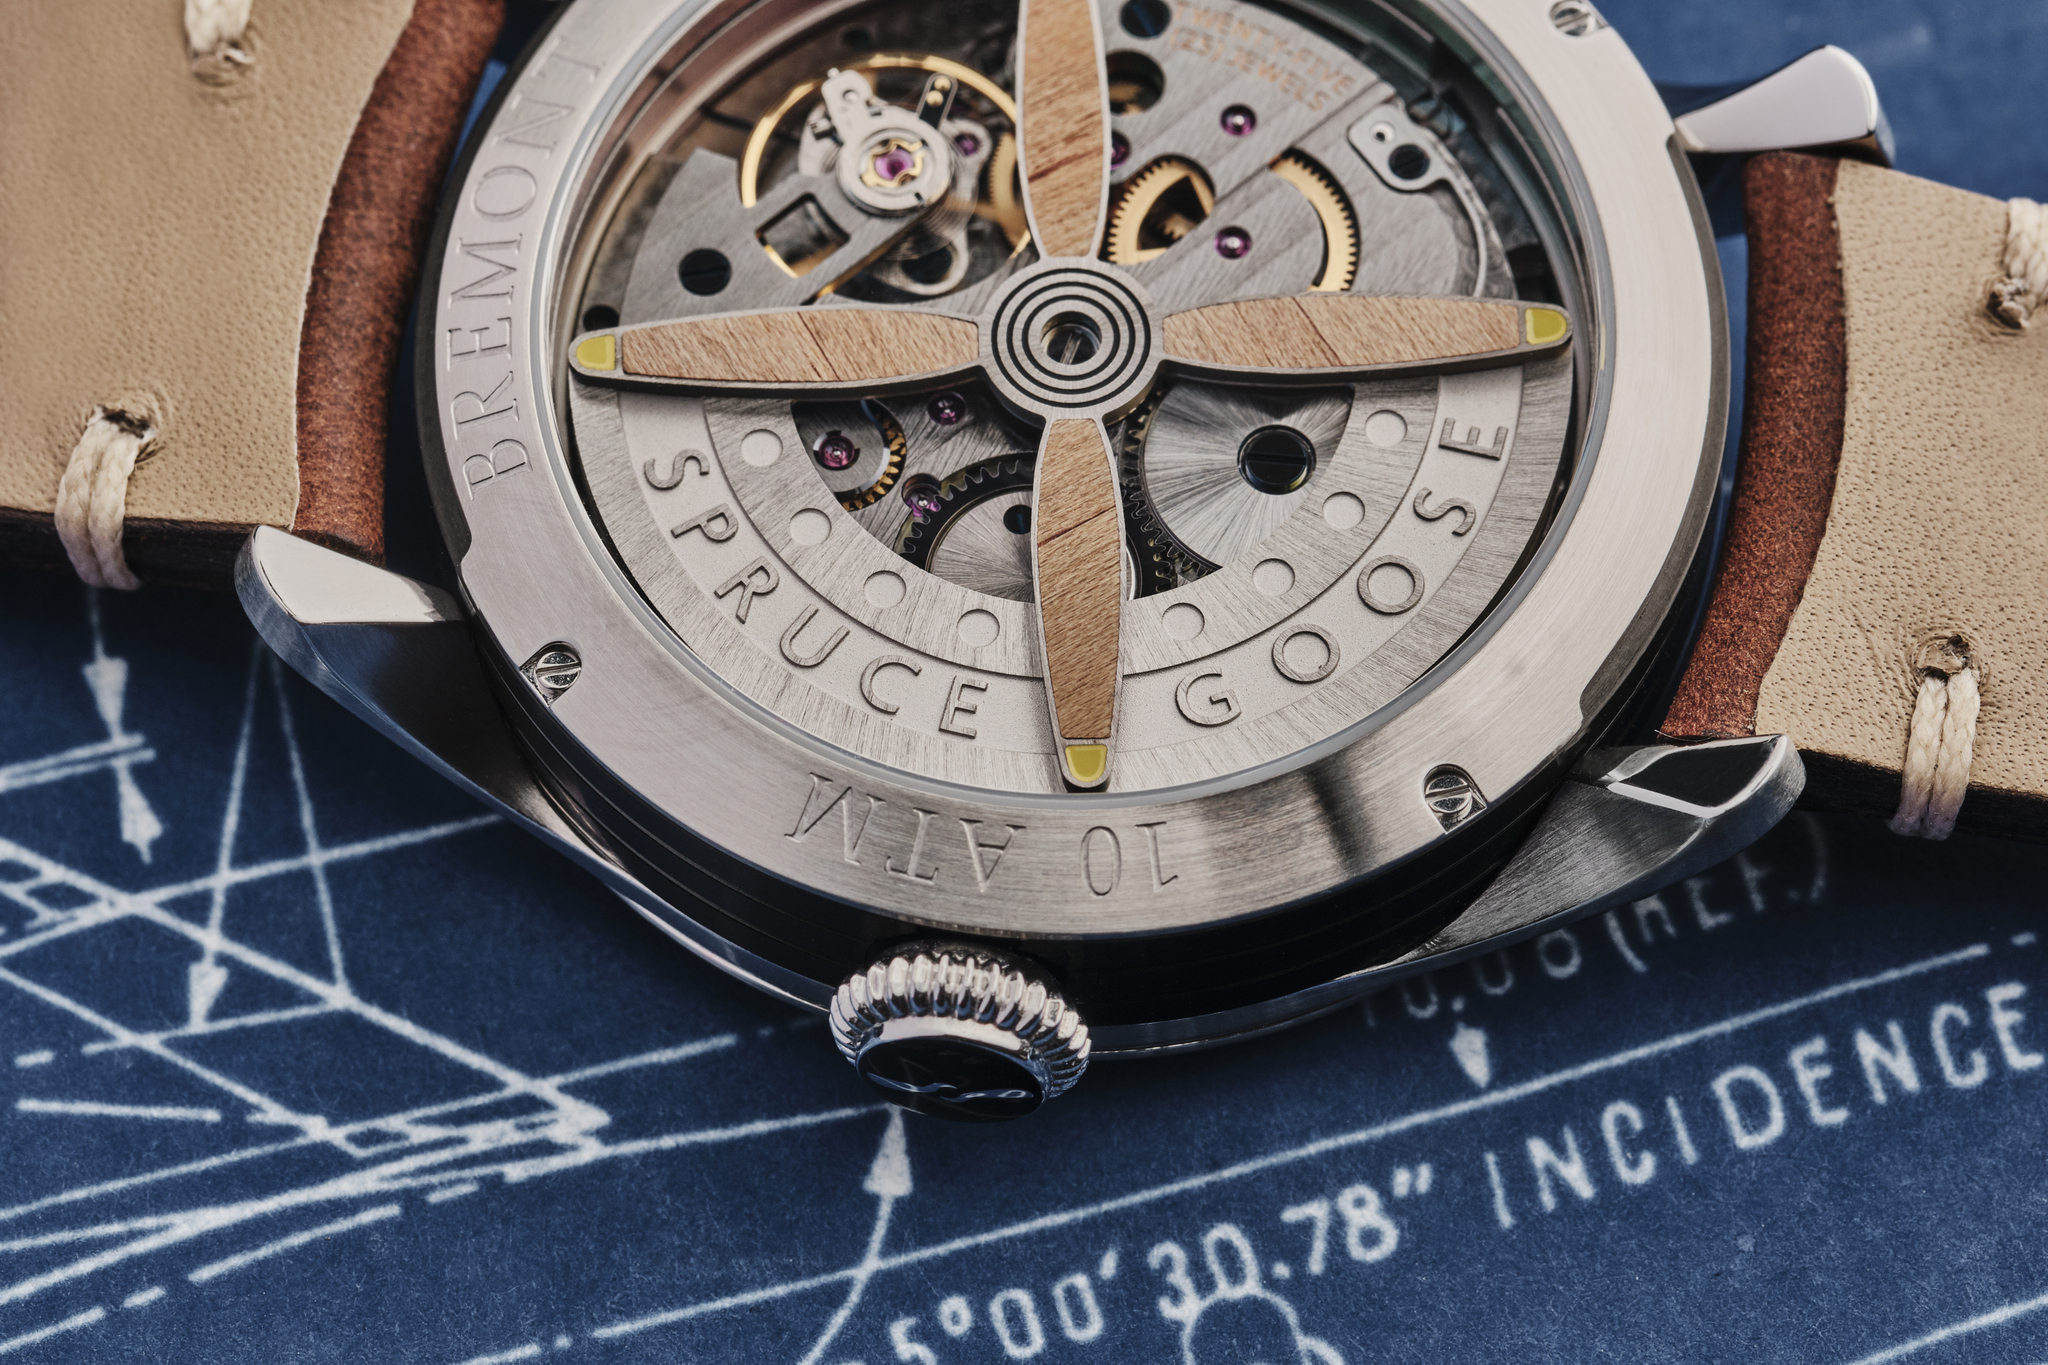 H-4 Hercules watch by Bremont.